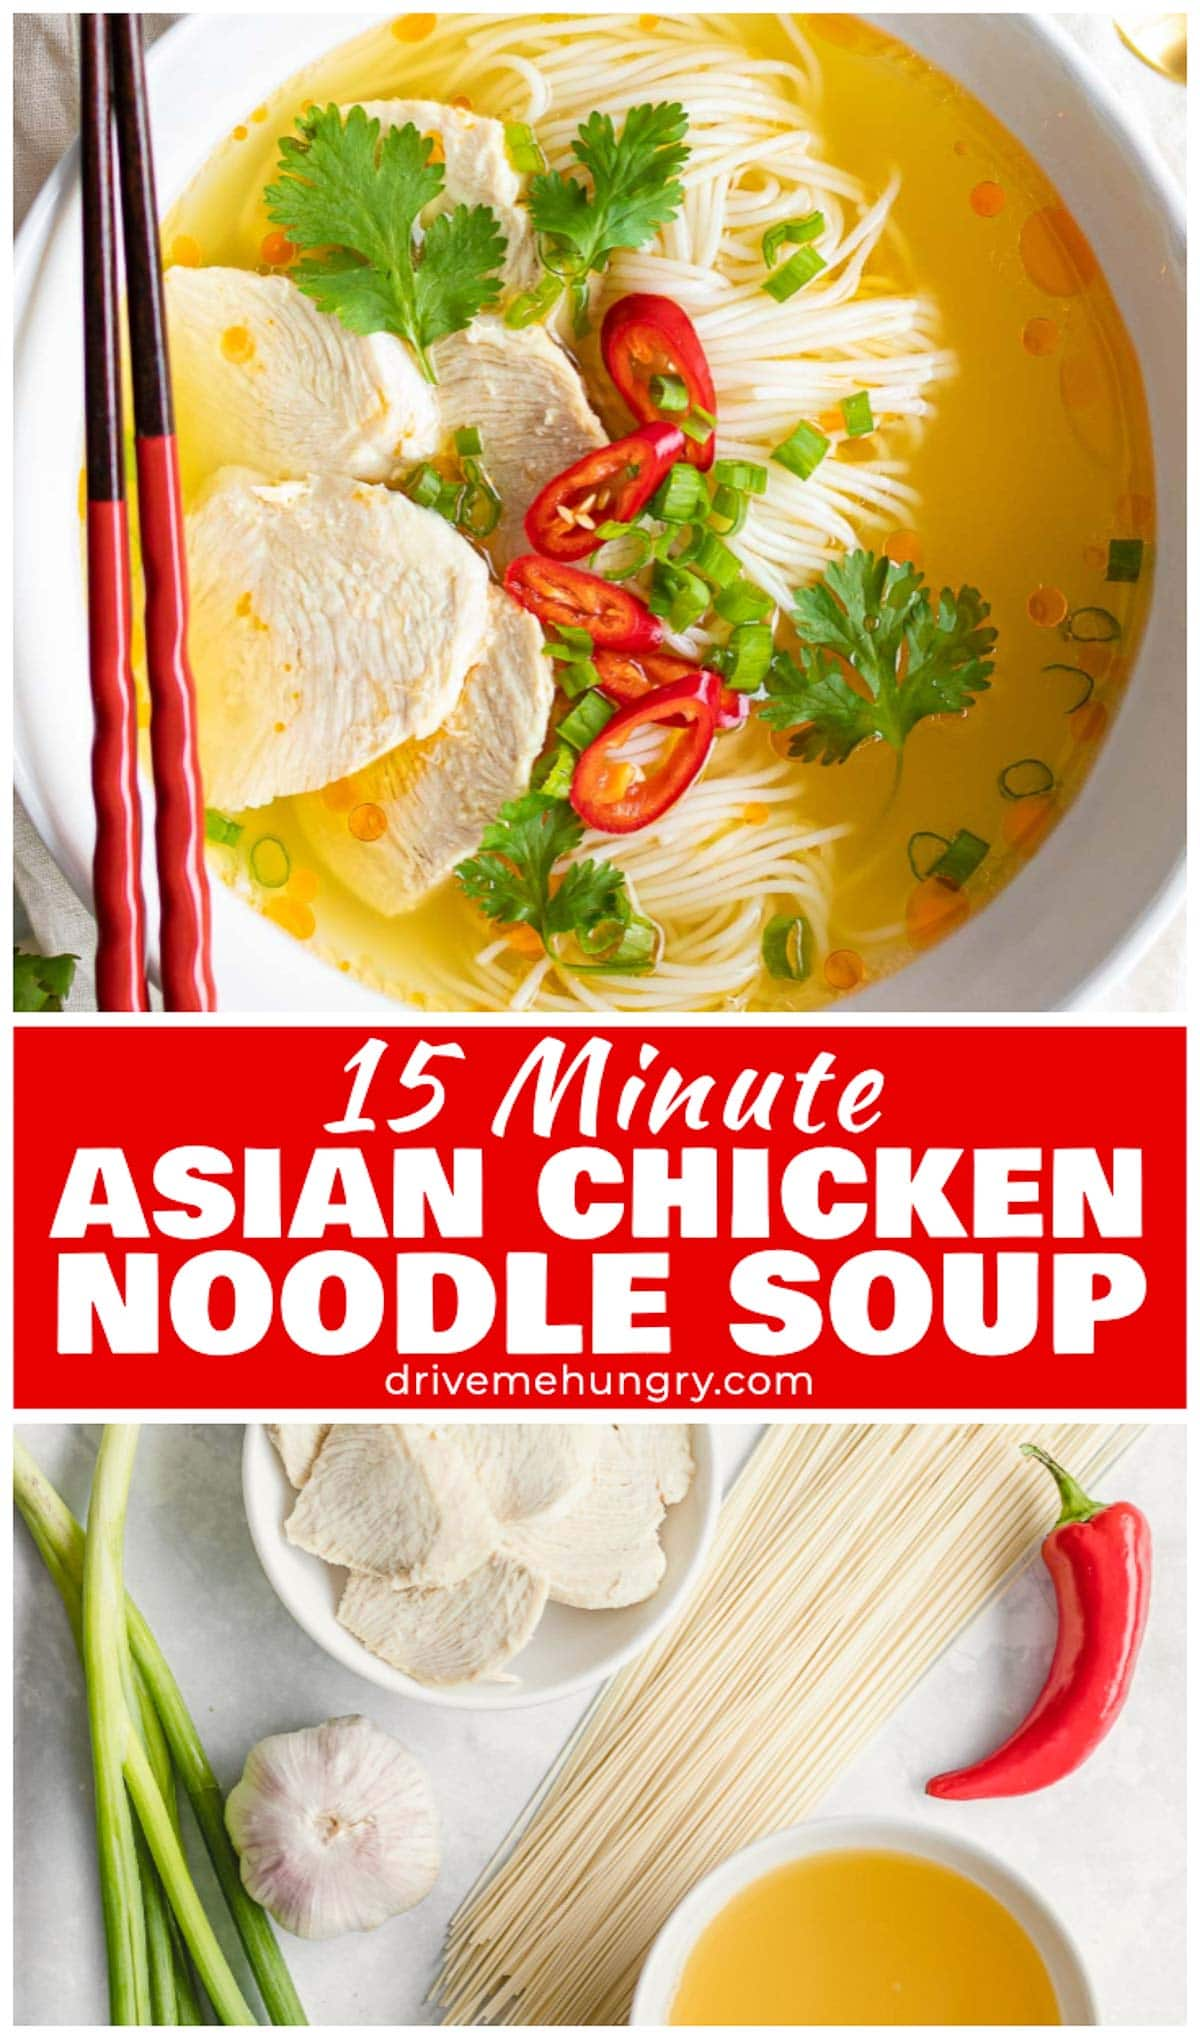 Easy 15 minute Asian chicken noodle soup made with a delicious Asian style broth flavored with garlic, ginger & hot chili oil. Made with thin somen noodles, chicken breast, and fresh herbs. This healthy Asian chicken noodle soup will warm you from the inside out. The perfect soup for cold & flu season! #asiansoups #asiannoodlesoup #chickensoup #asianchickennoodlesoup #noodlesoups #chickennoodlesoup | drivemehungry.com